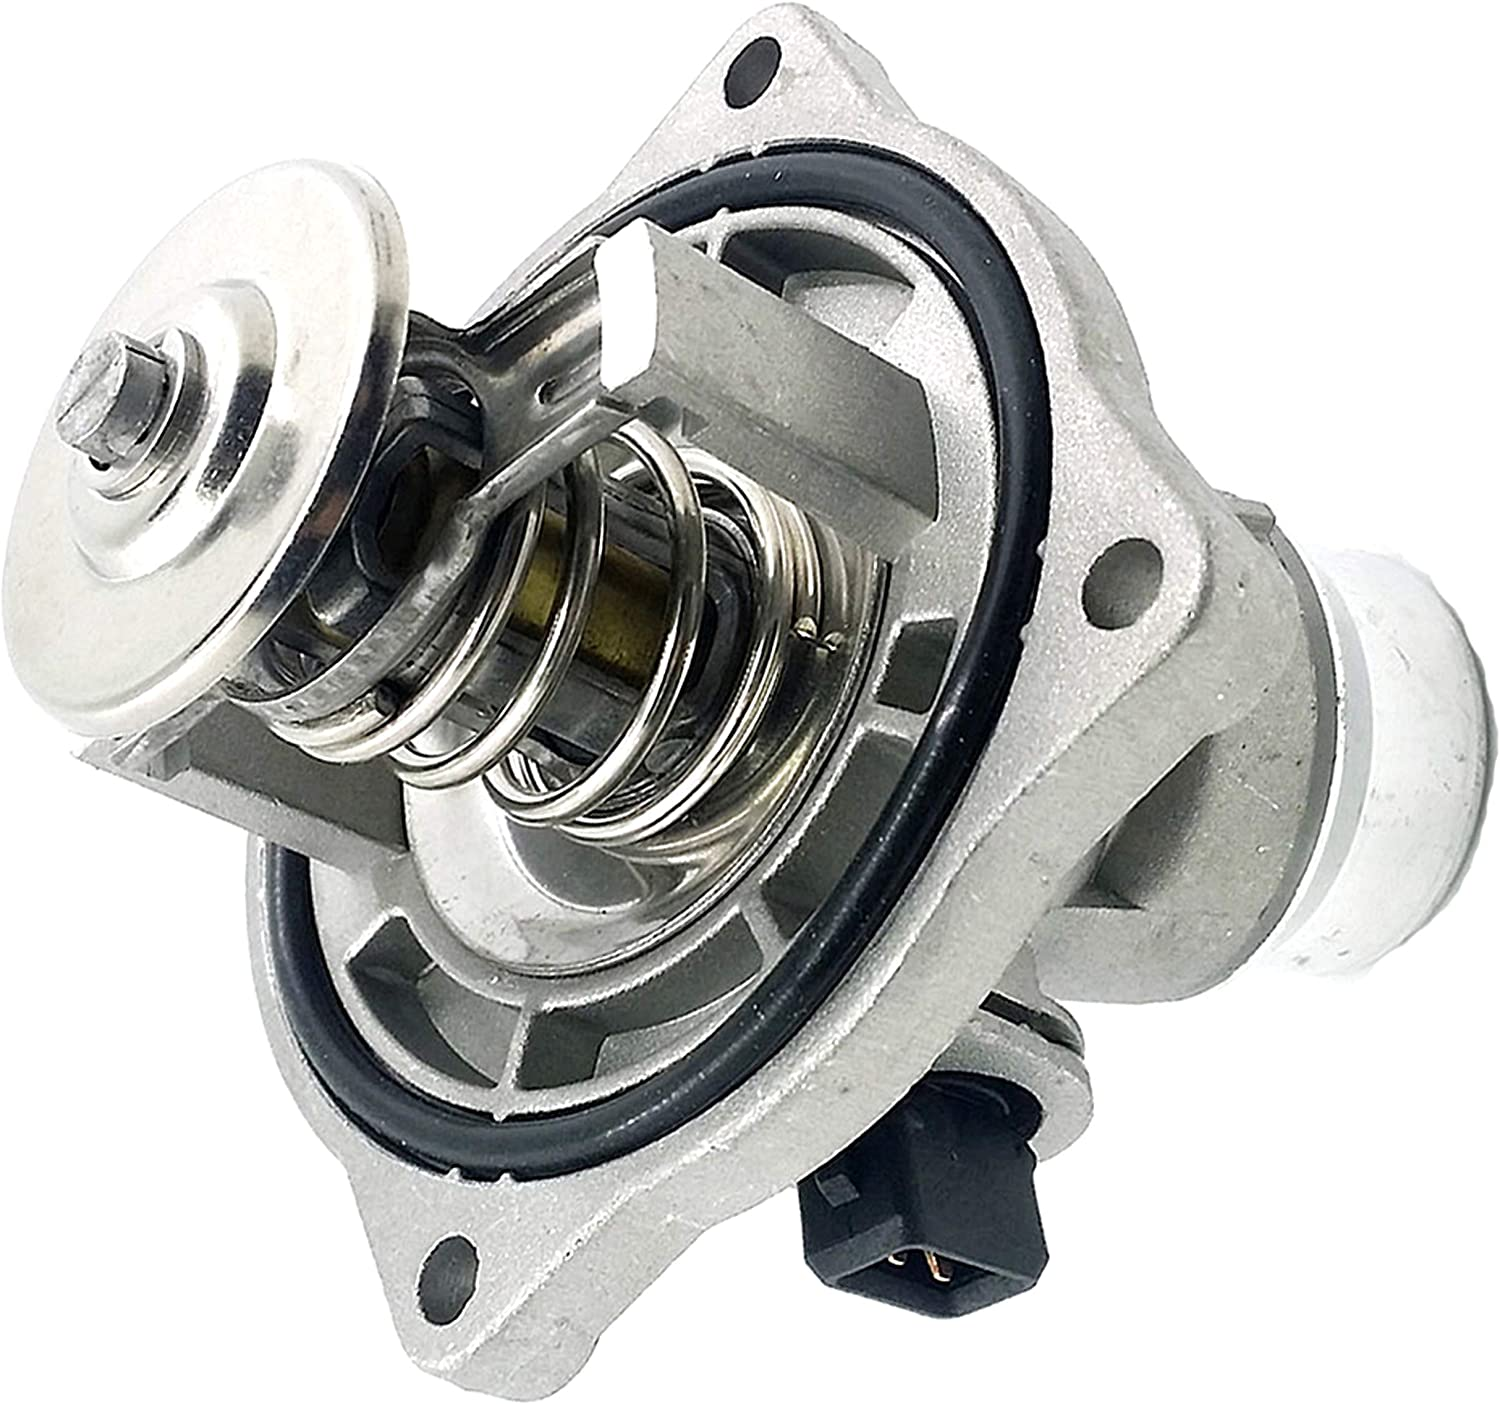 New Thermostat Assembly For Land Rover Range Rover BMW 540i X5 740iL PEL000060